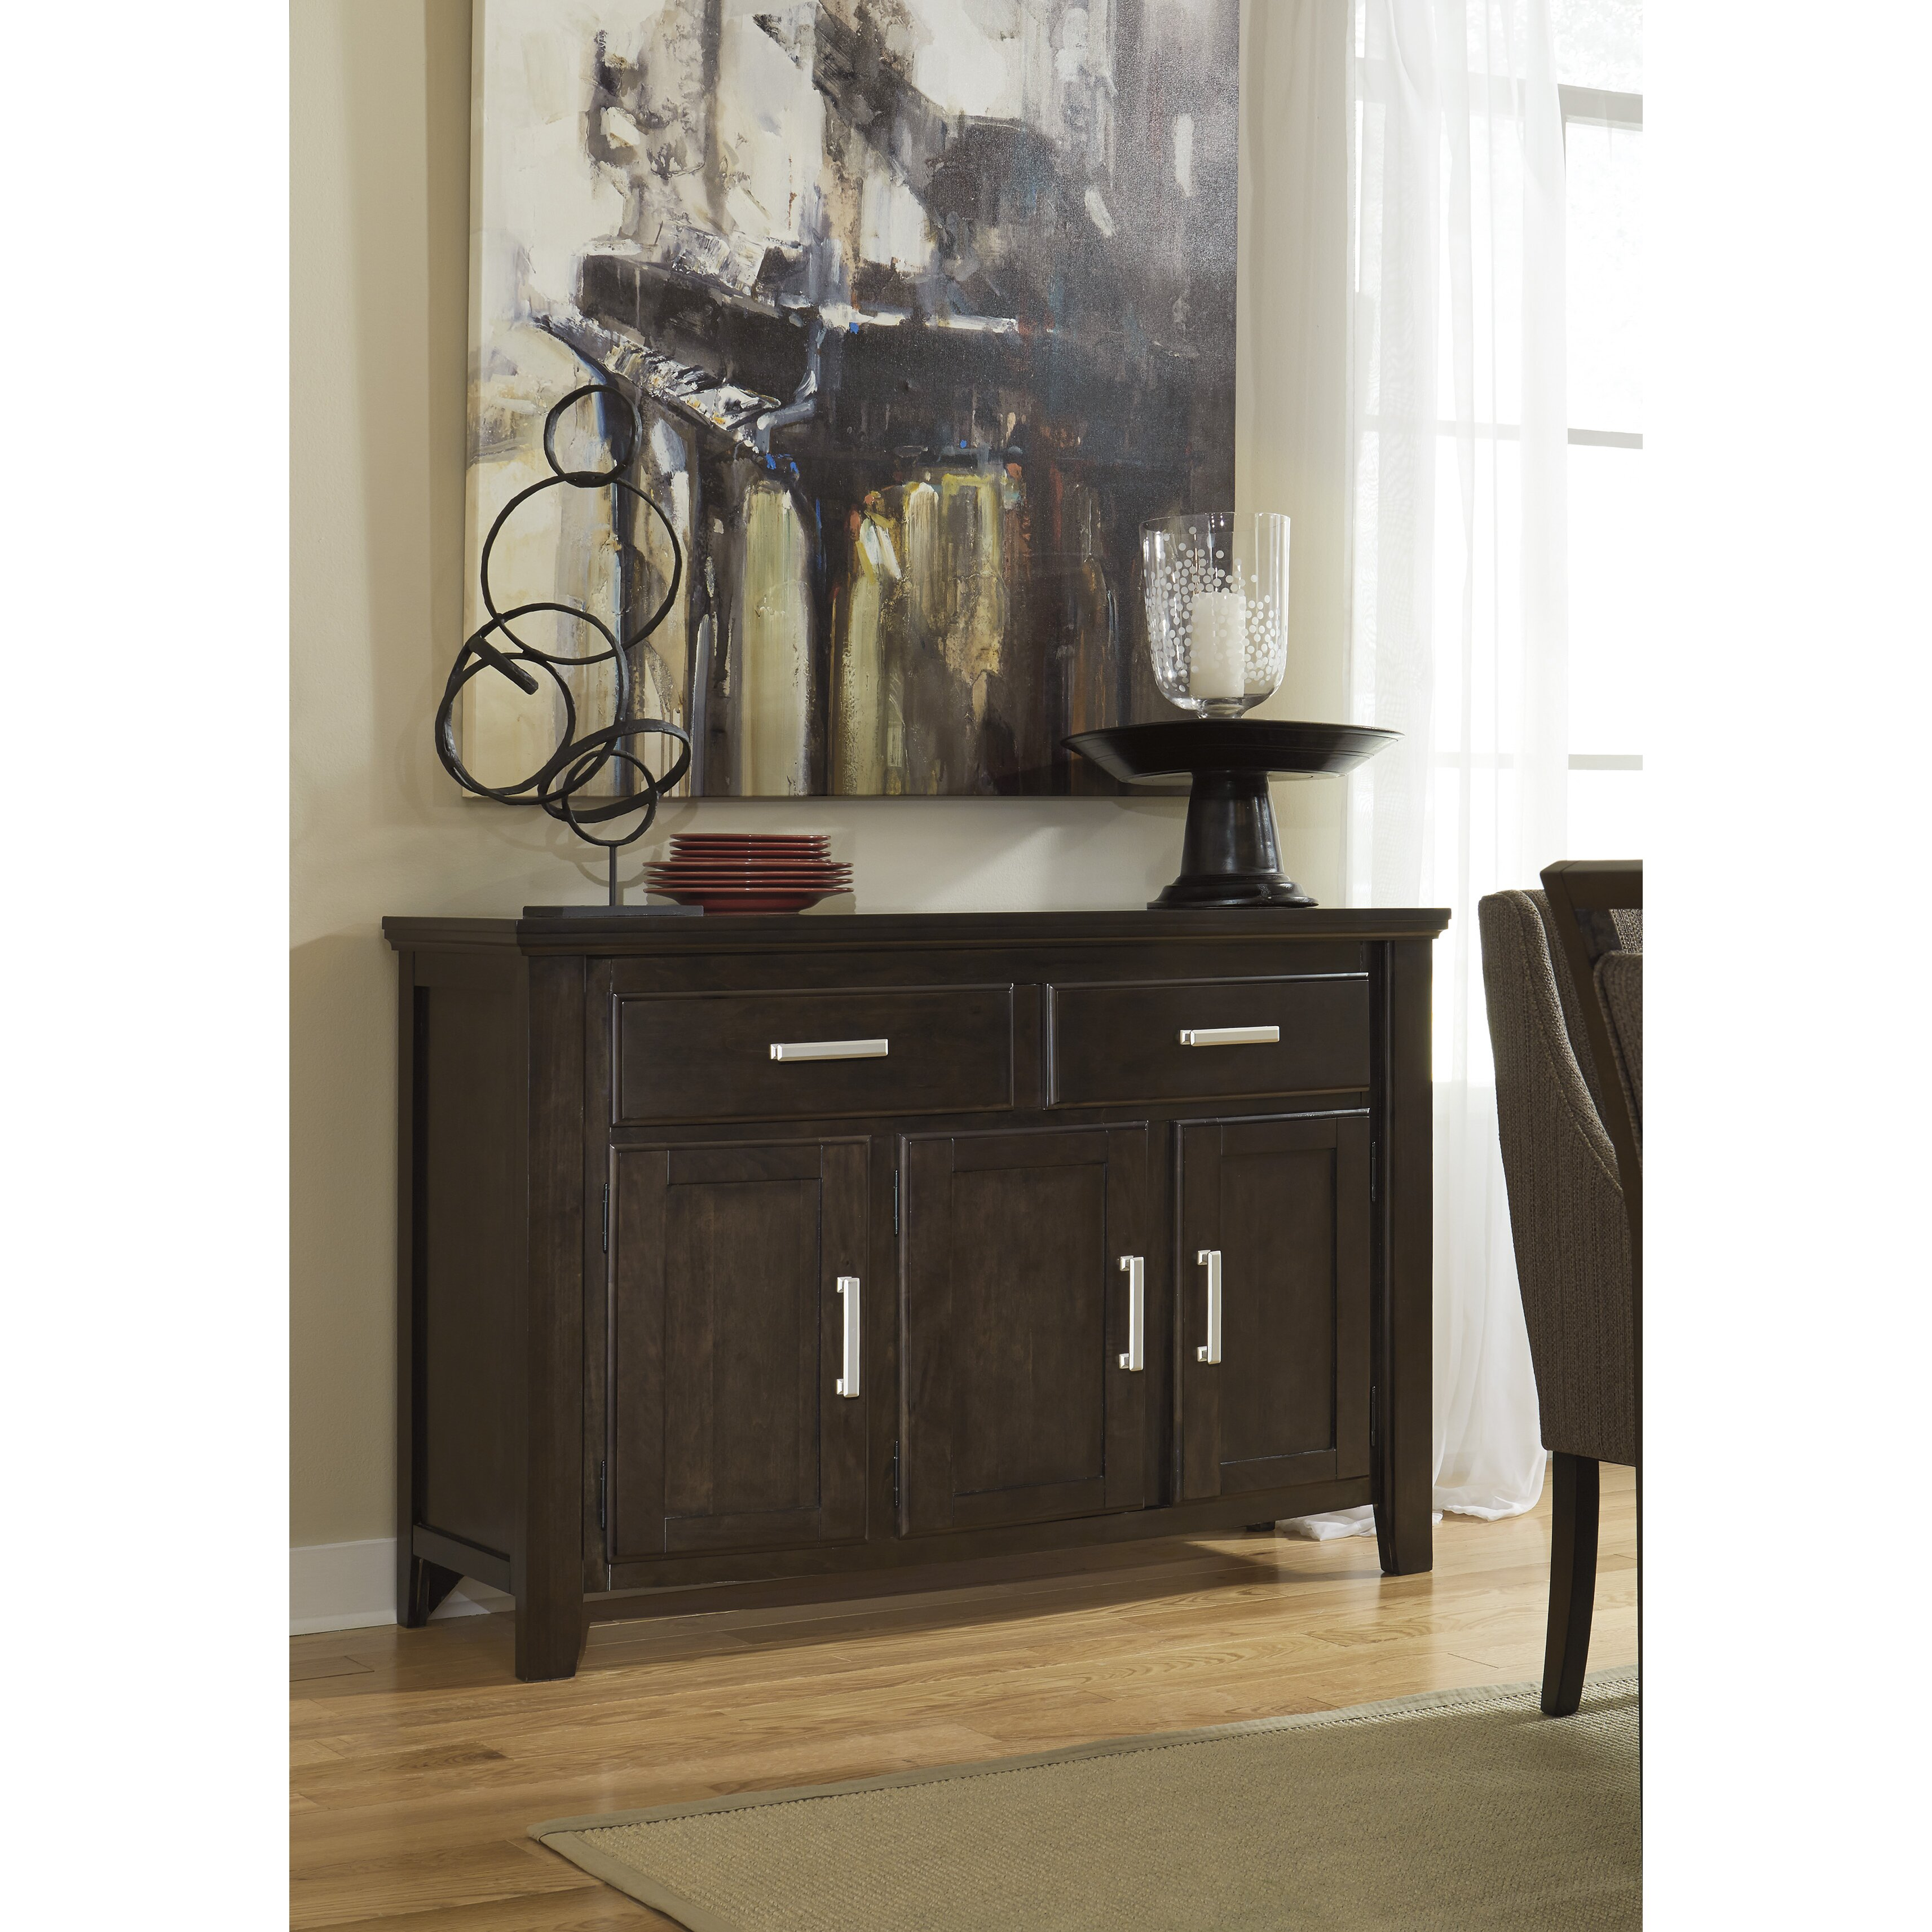 Signature Design By Ashley Lanquist Dining Room Sideboard